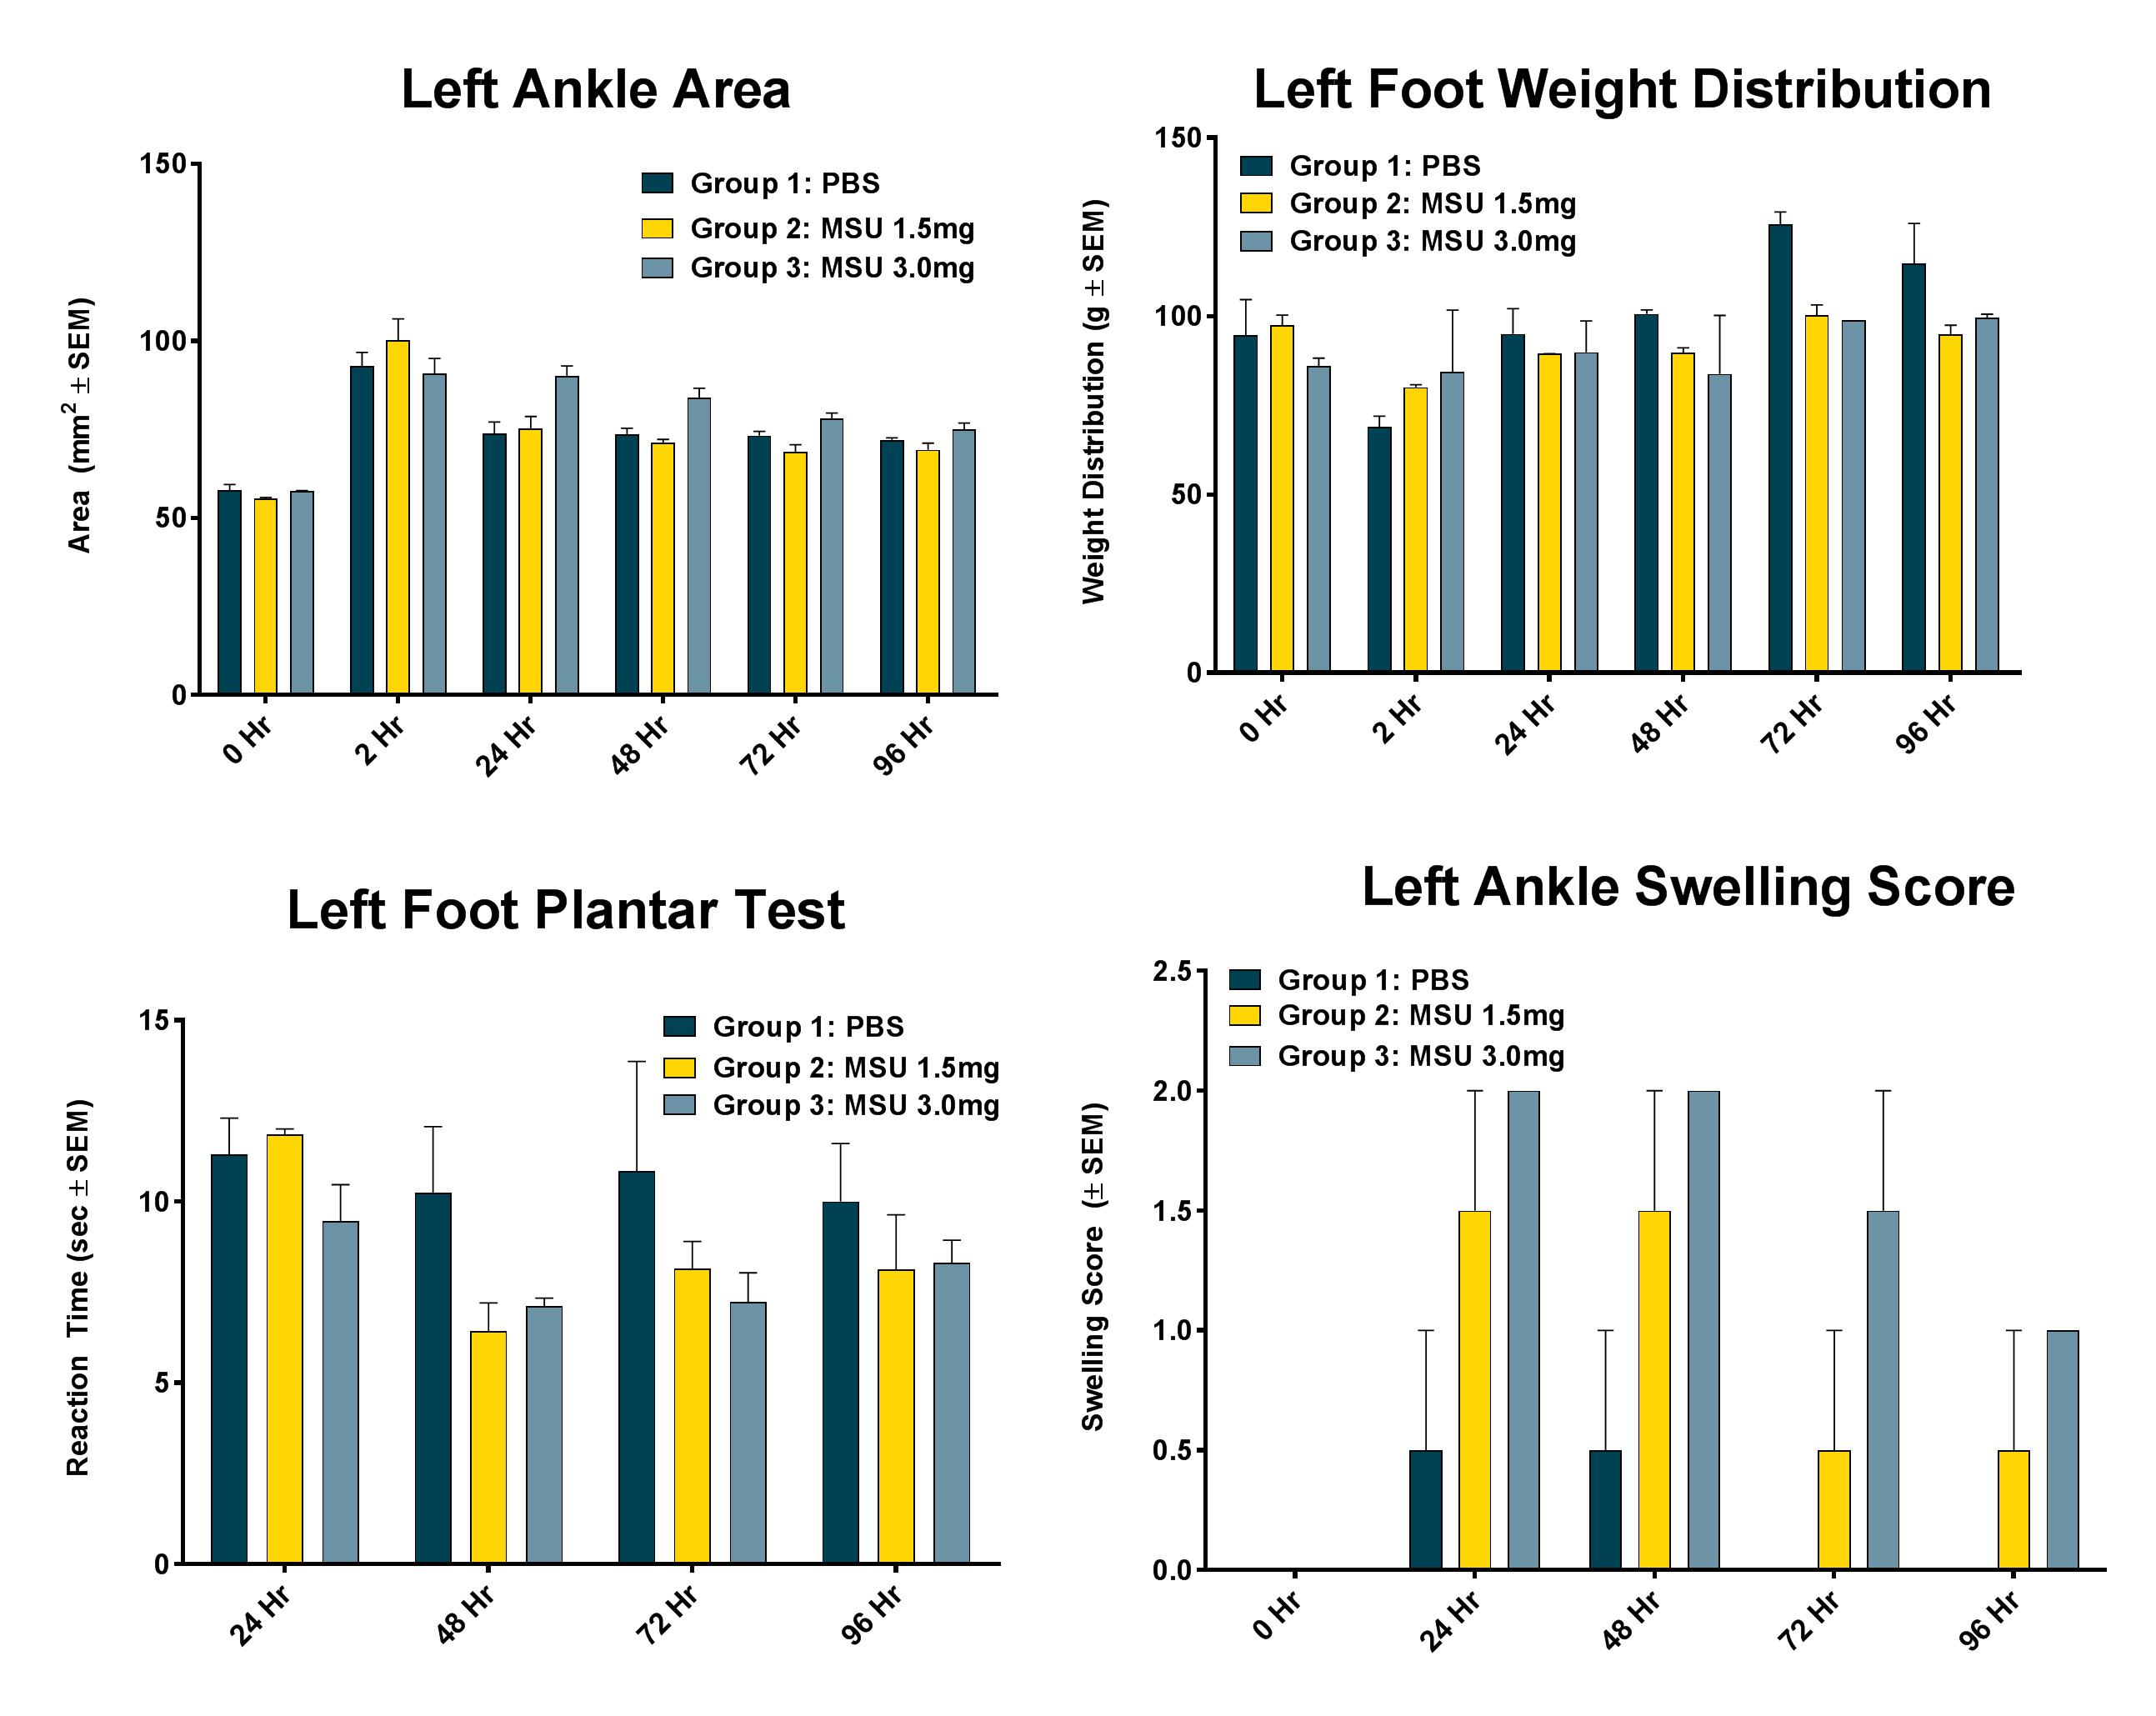 Data shows that increasing concentrations of MSU crystals directly into the left ankle leads to acute increases in ankle diameter, reductions in weight distribution on the affected foot, increased reaction time on the plantar test, and increased ankle swelling scores